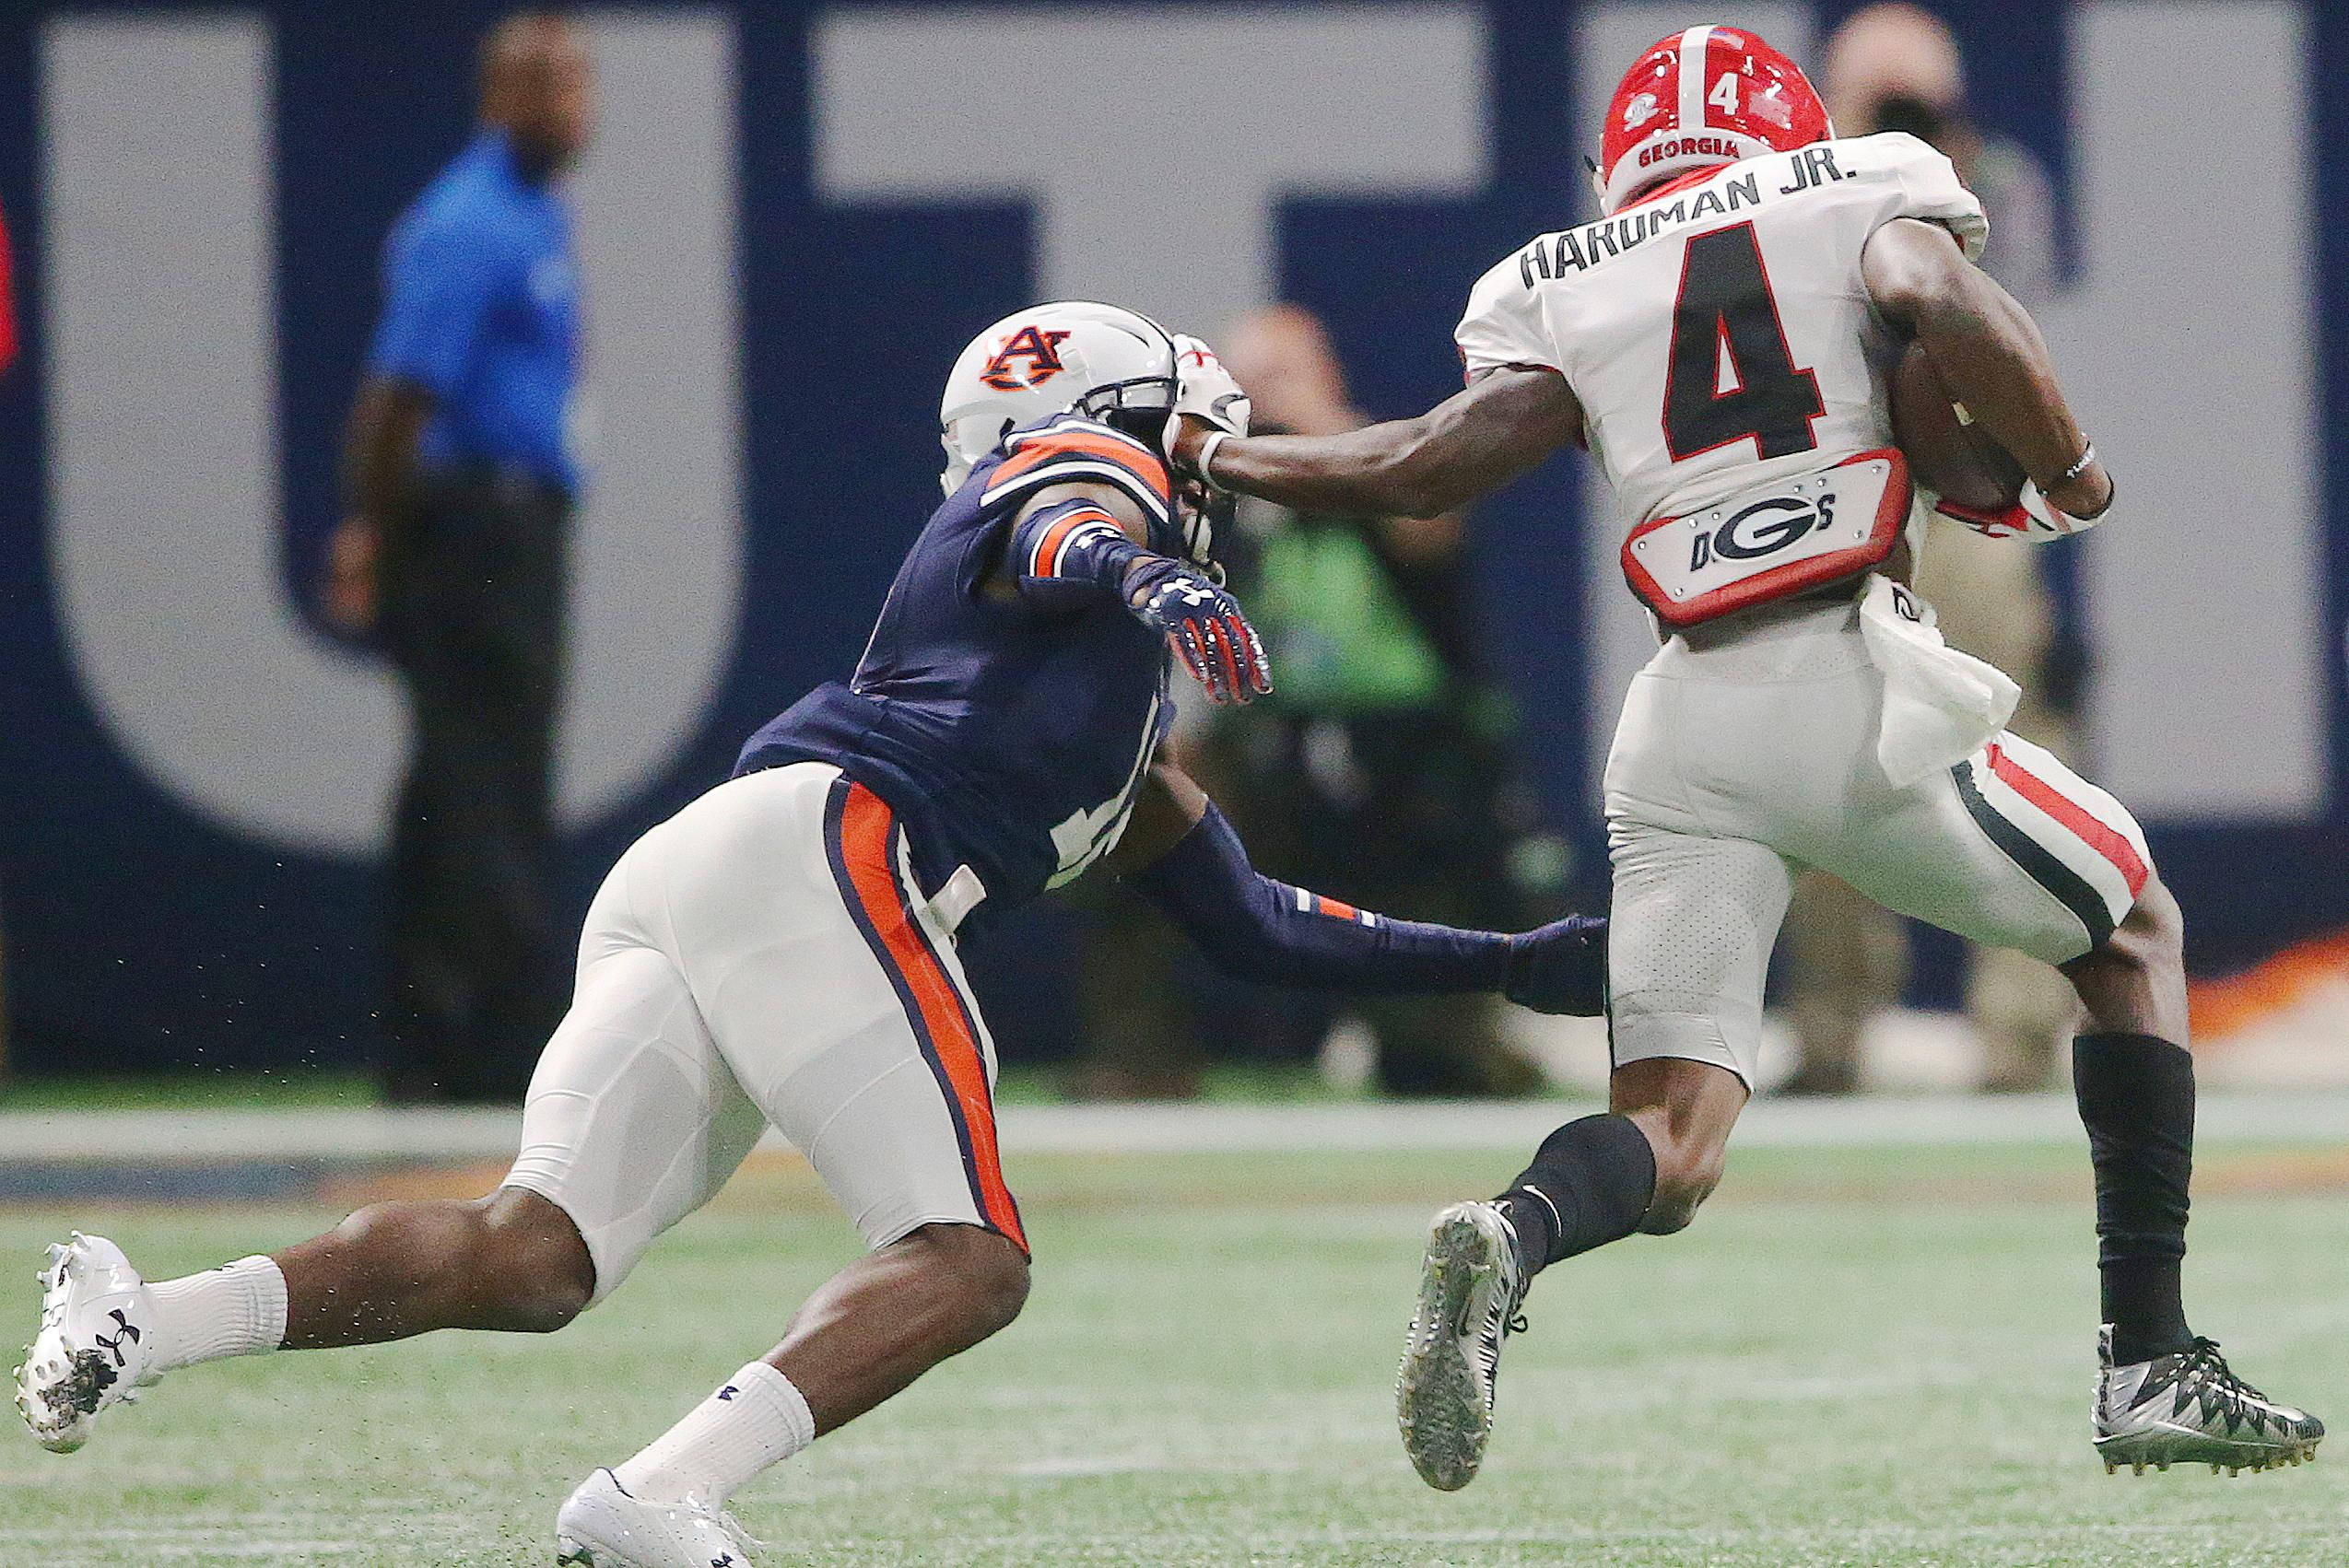 Georgia wide receiver Mecole Hardman (4) hits Auburn defensive back Jamel Dean (12) during the first half of the Southeastern Conference championship NCAA college football game, Saturday, Dec. 2, 2017, in Atlanta. (AP Photo/John Bazemore)